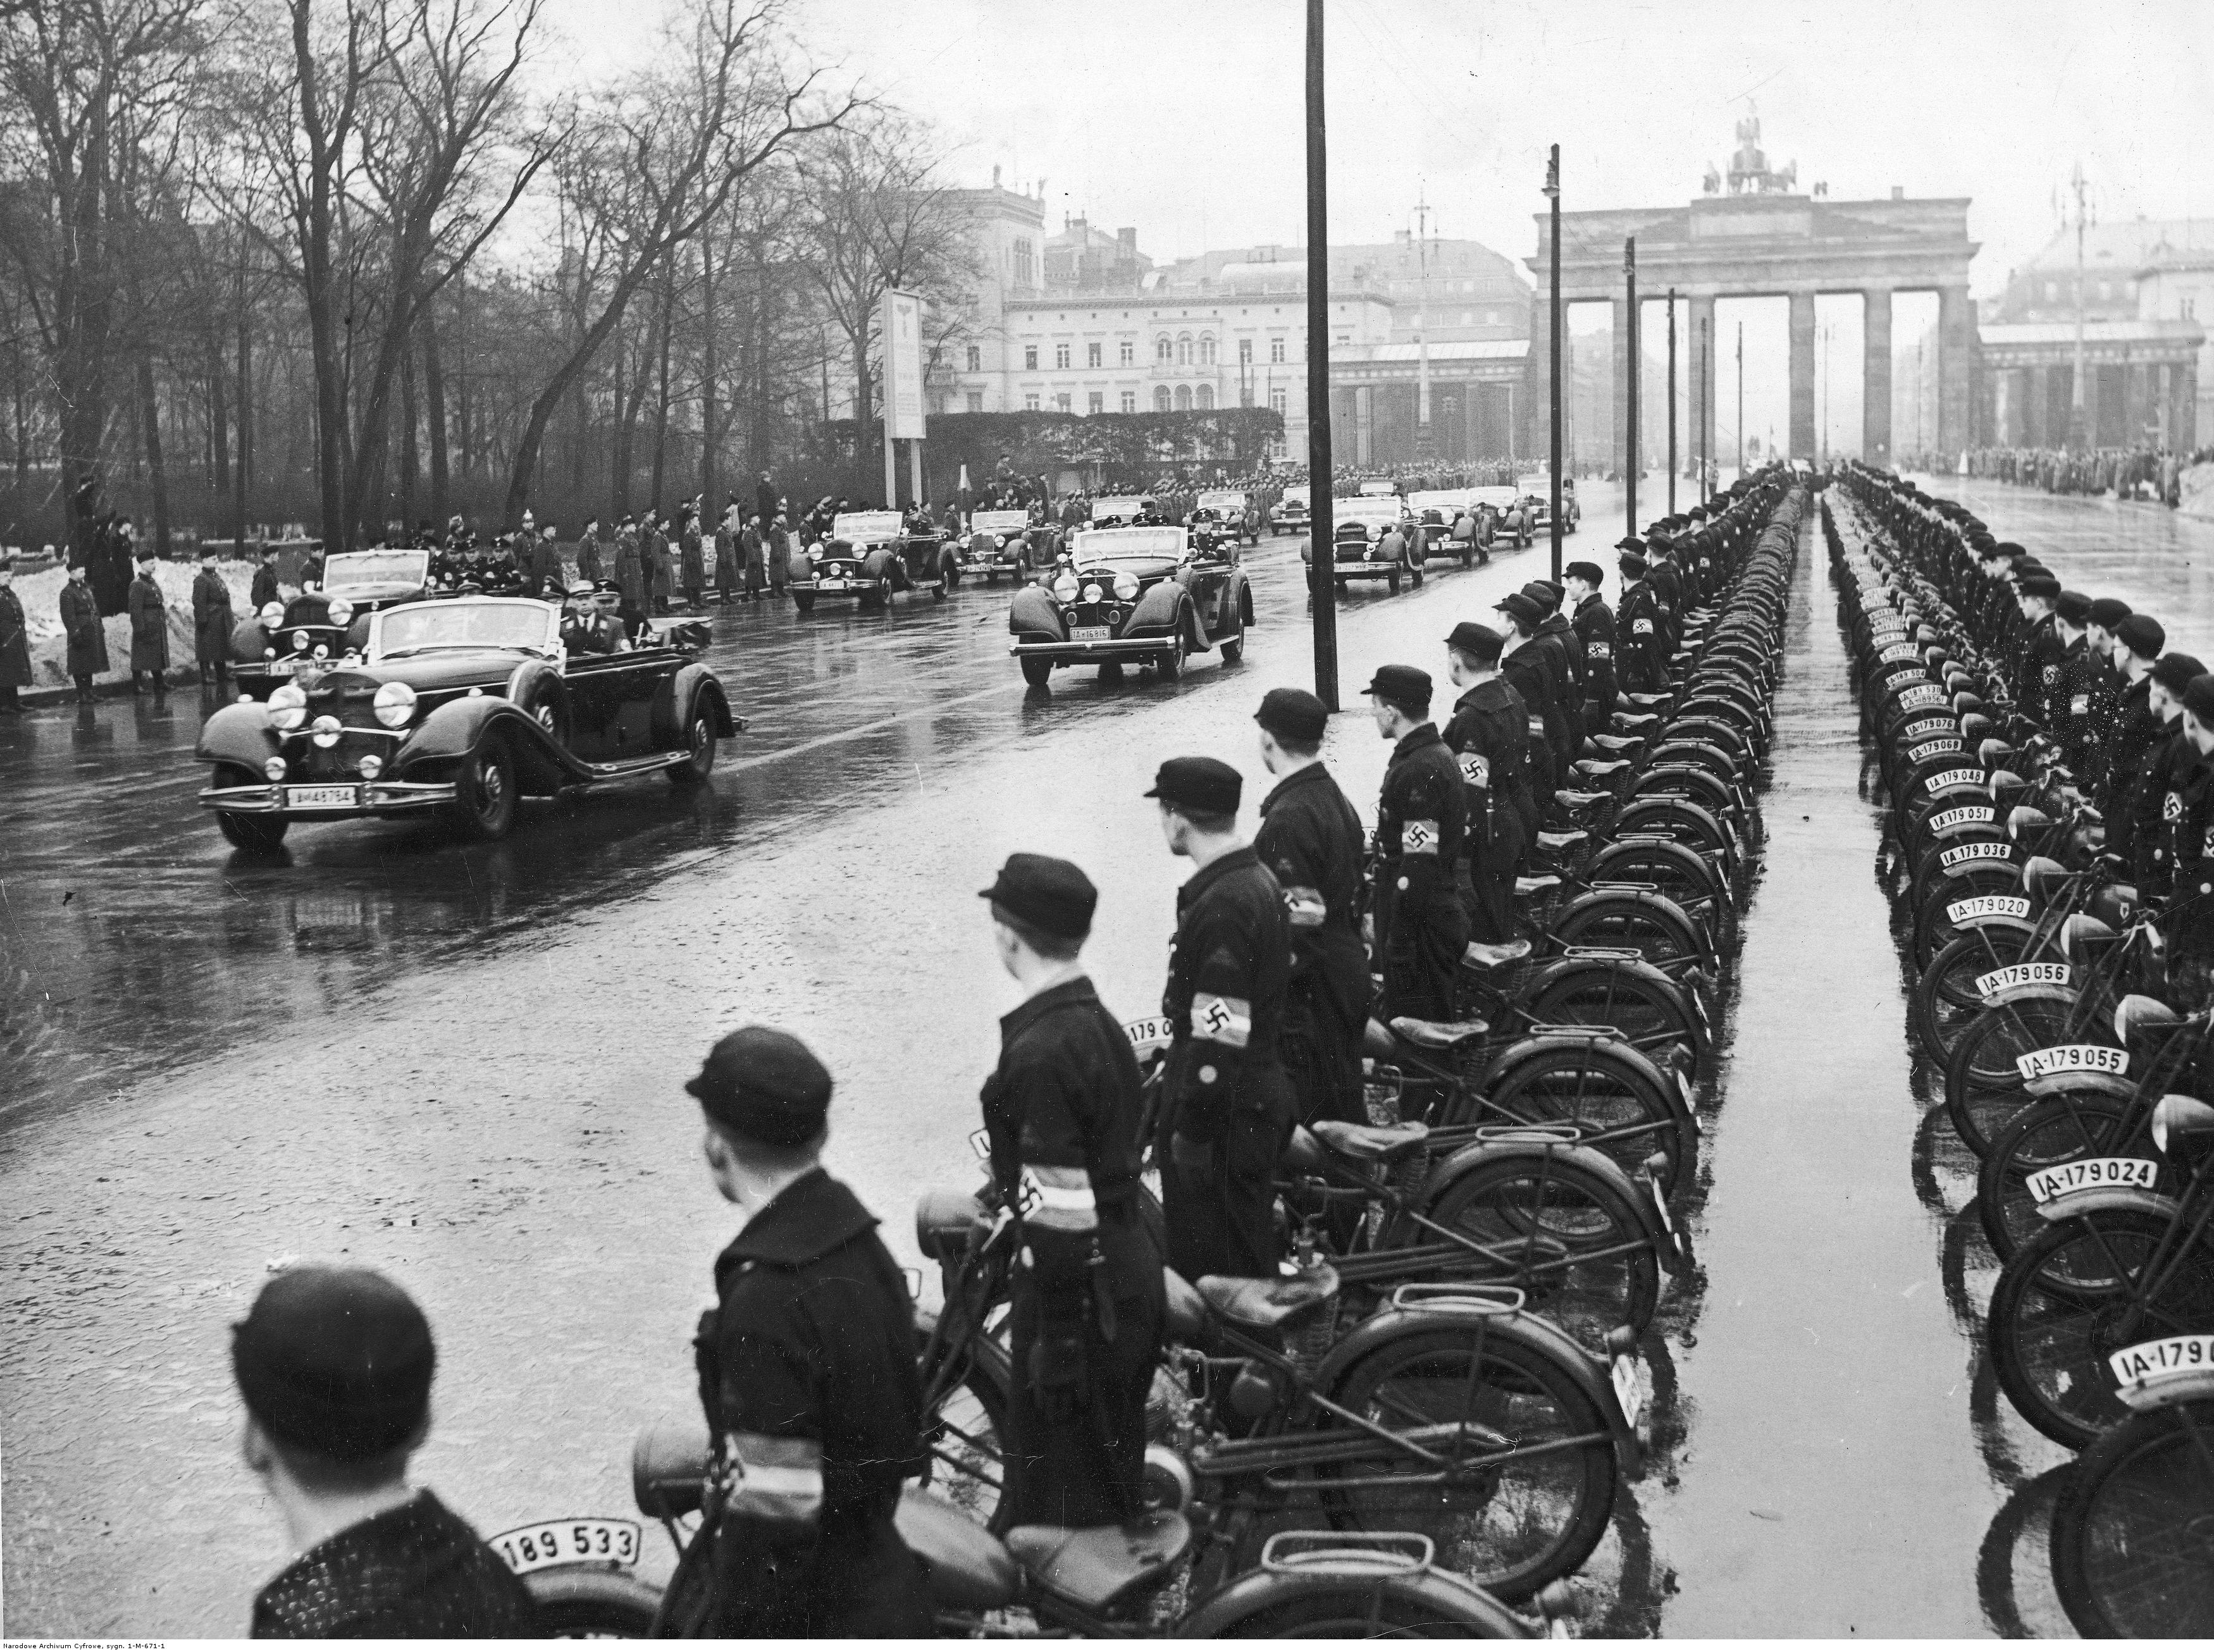 Adolf Hitler arrives at the international automobile show in front of the Brandeburg gate in Berlin, along a parade of 20000 NSKK members